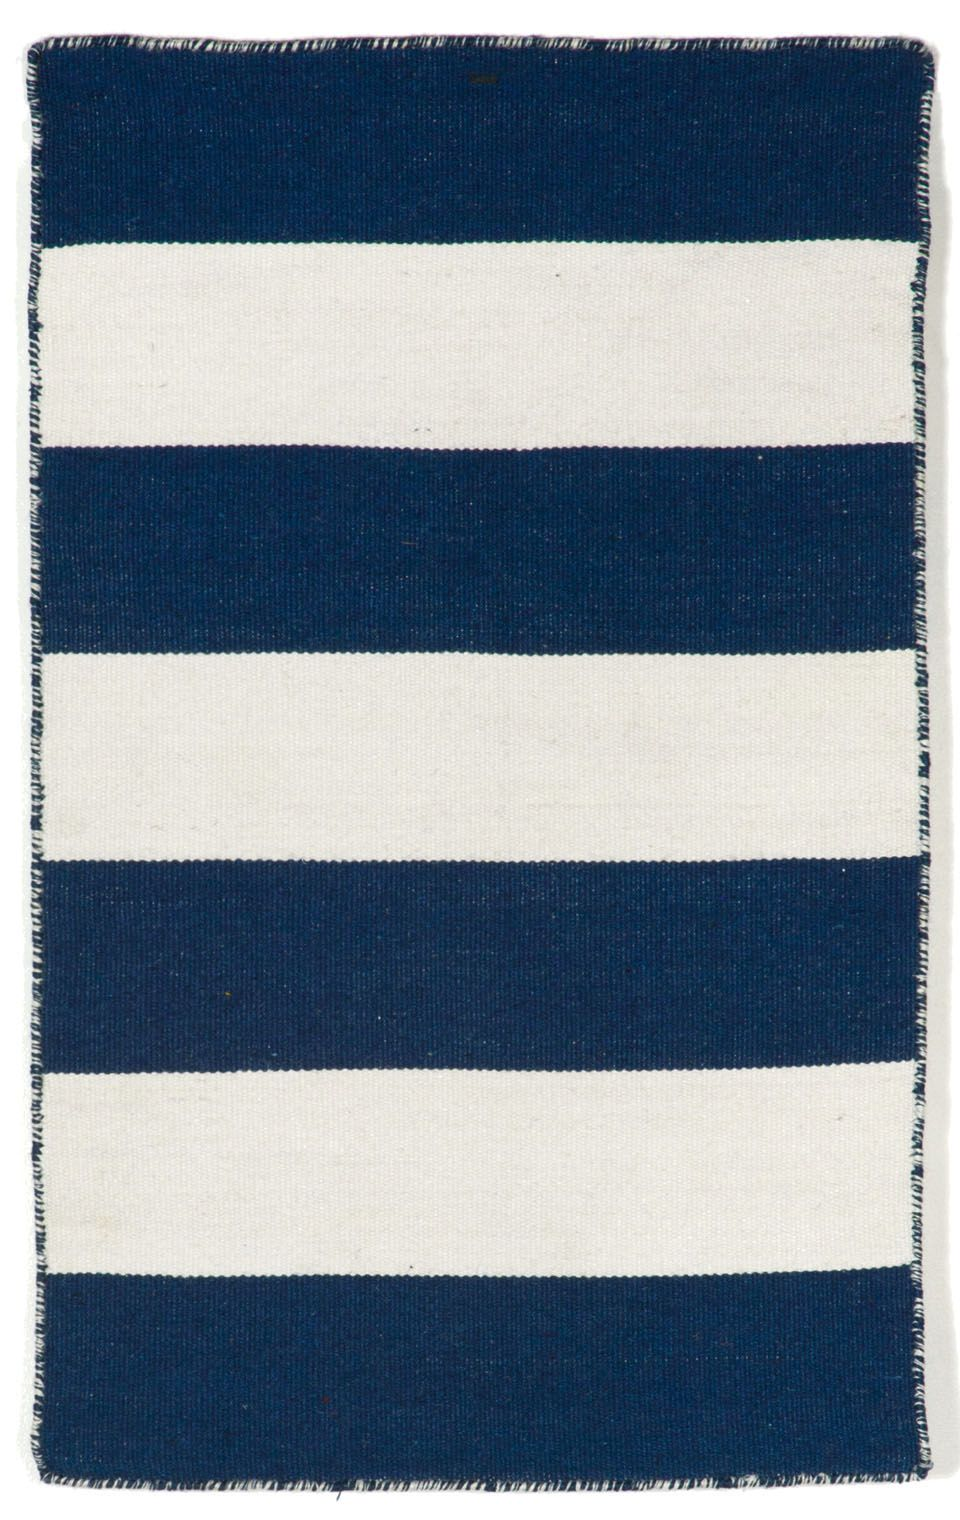 Your Source For The Finest Rugs Home Decor Fashion Accessories Navy Area Rug Outdoor Rugs Navy Rug